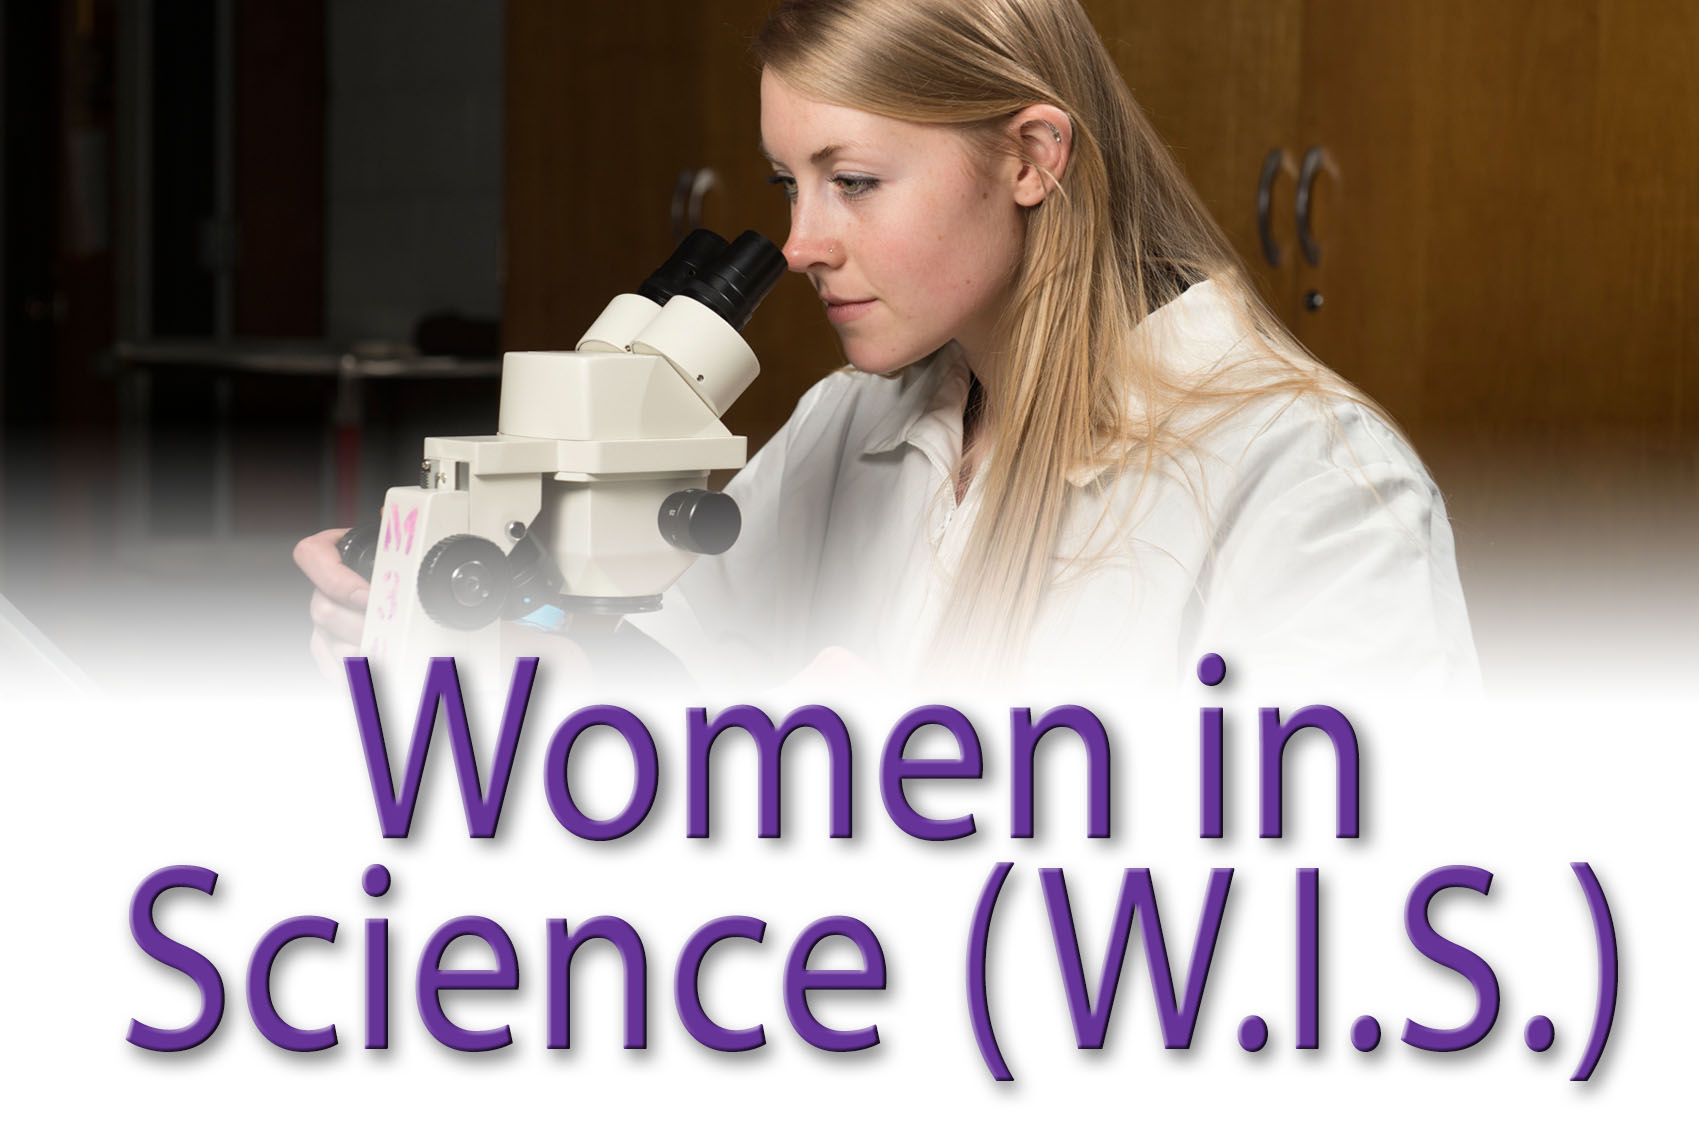 Women in Science.